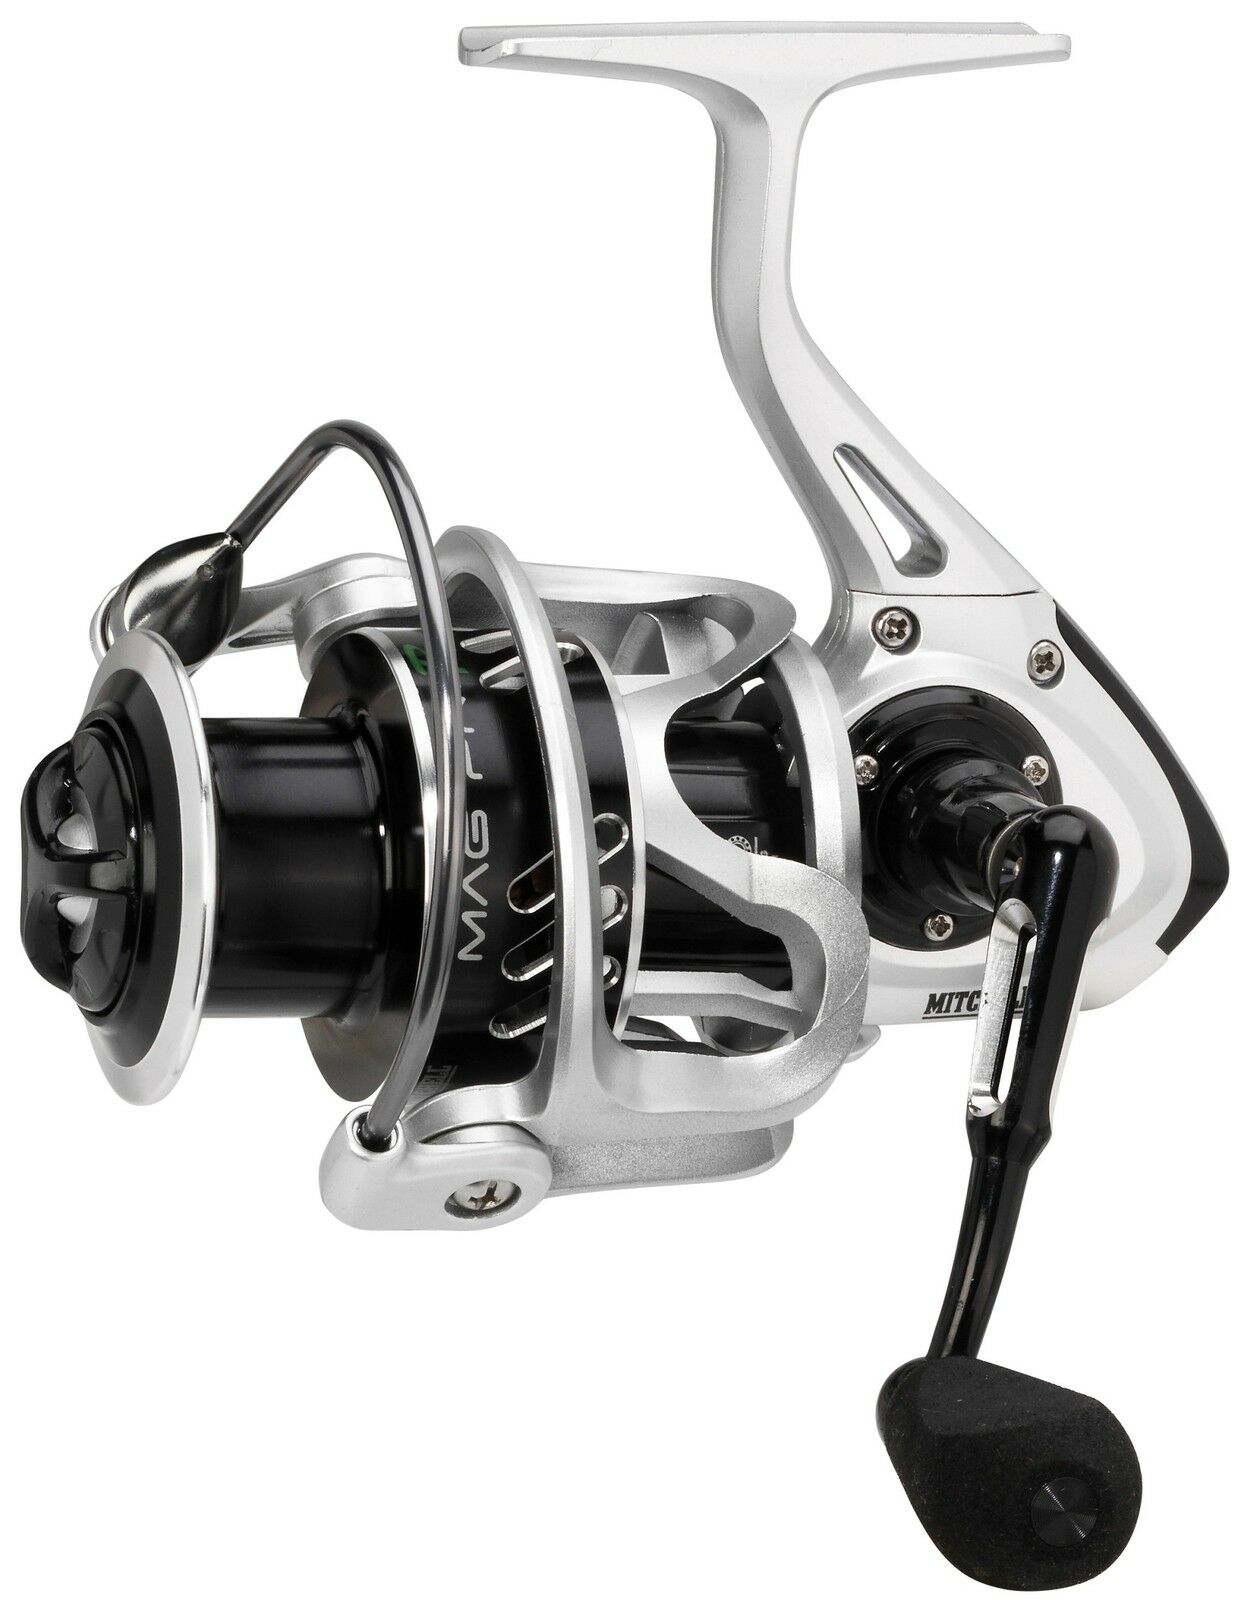 MITCHELL MAG PRO R - 1000 2000 3000 4000 - Front Drag Spinning Reel